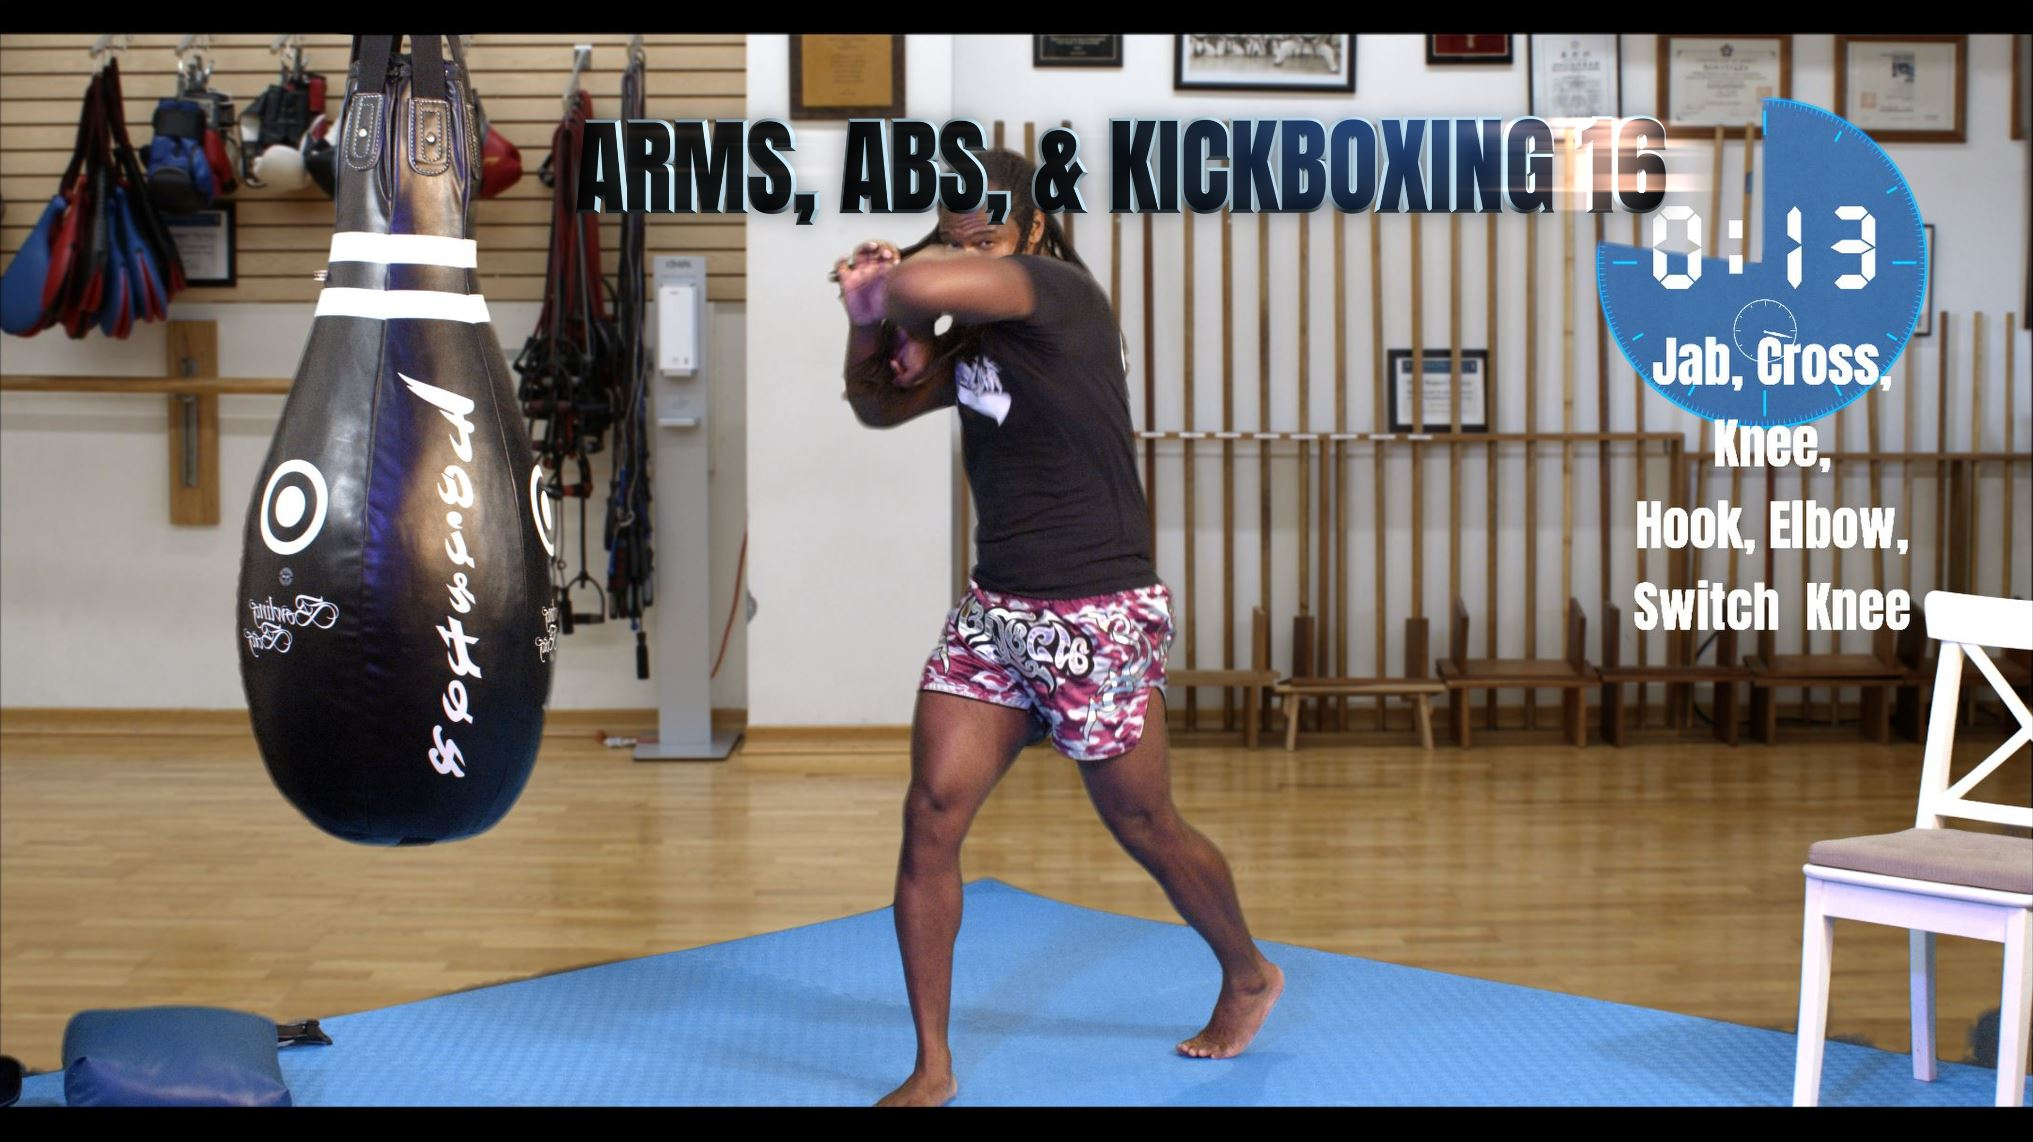 Arms and Abs/ Kickboxing 16